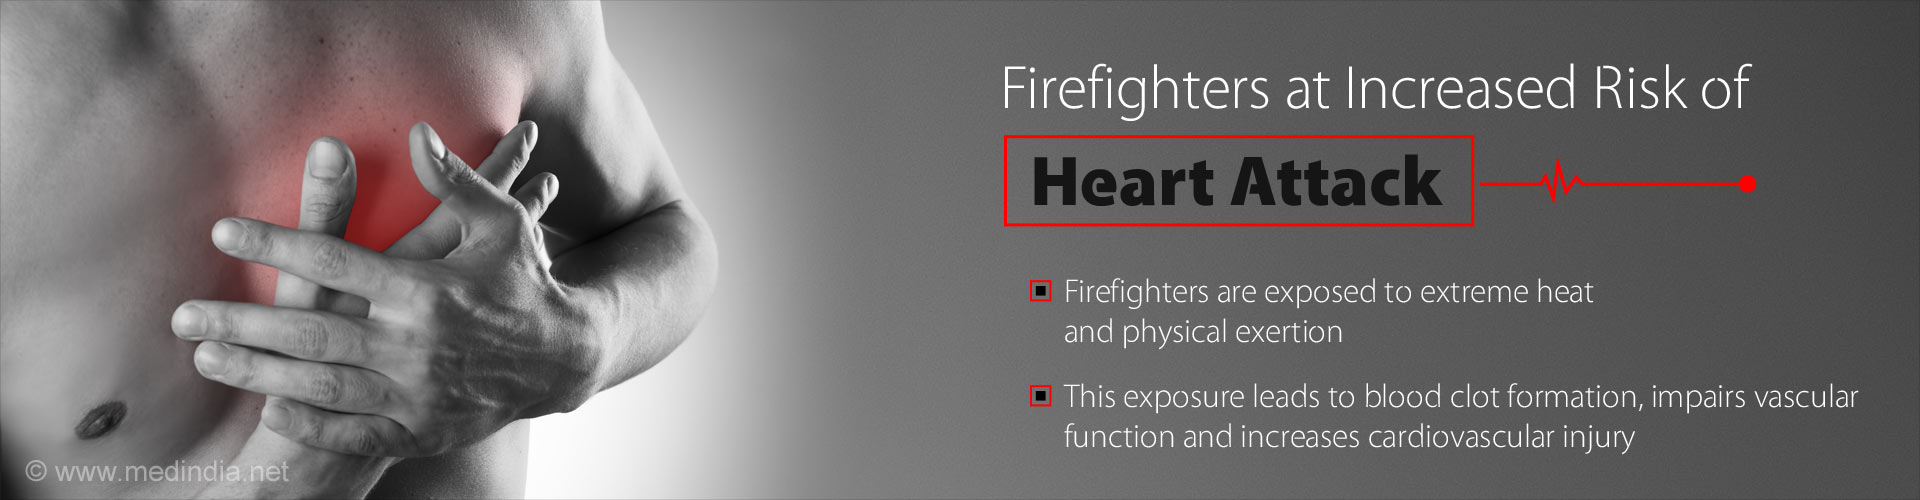 Are Firefighters at Increased Risk of Heart Attacks?